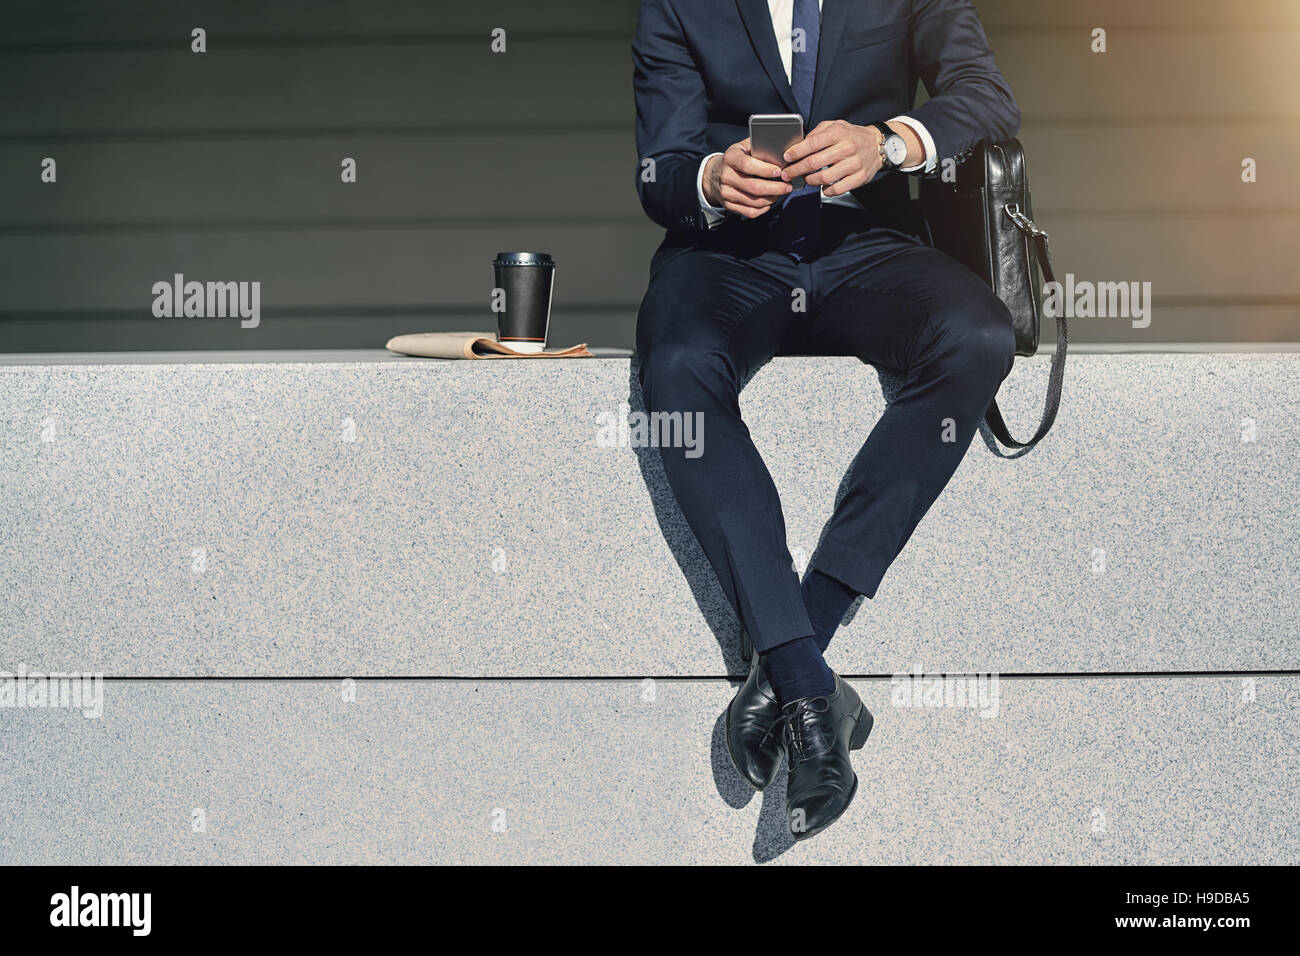 Crossed legs of businessman sitting with cellphone. Horizontal outdoors shot - Stock Image